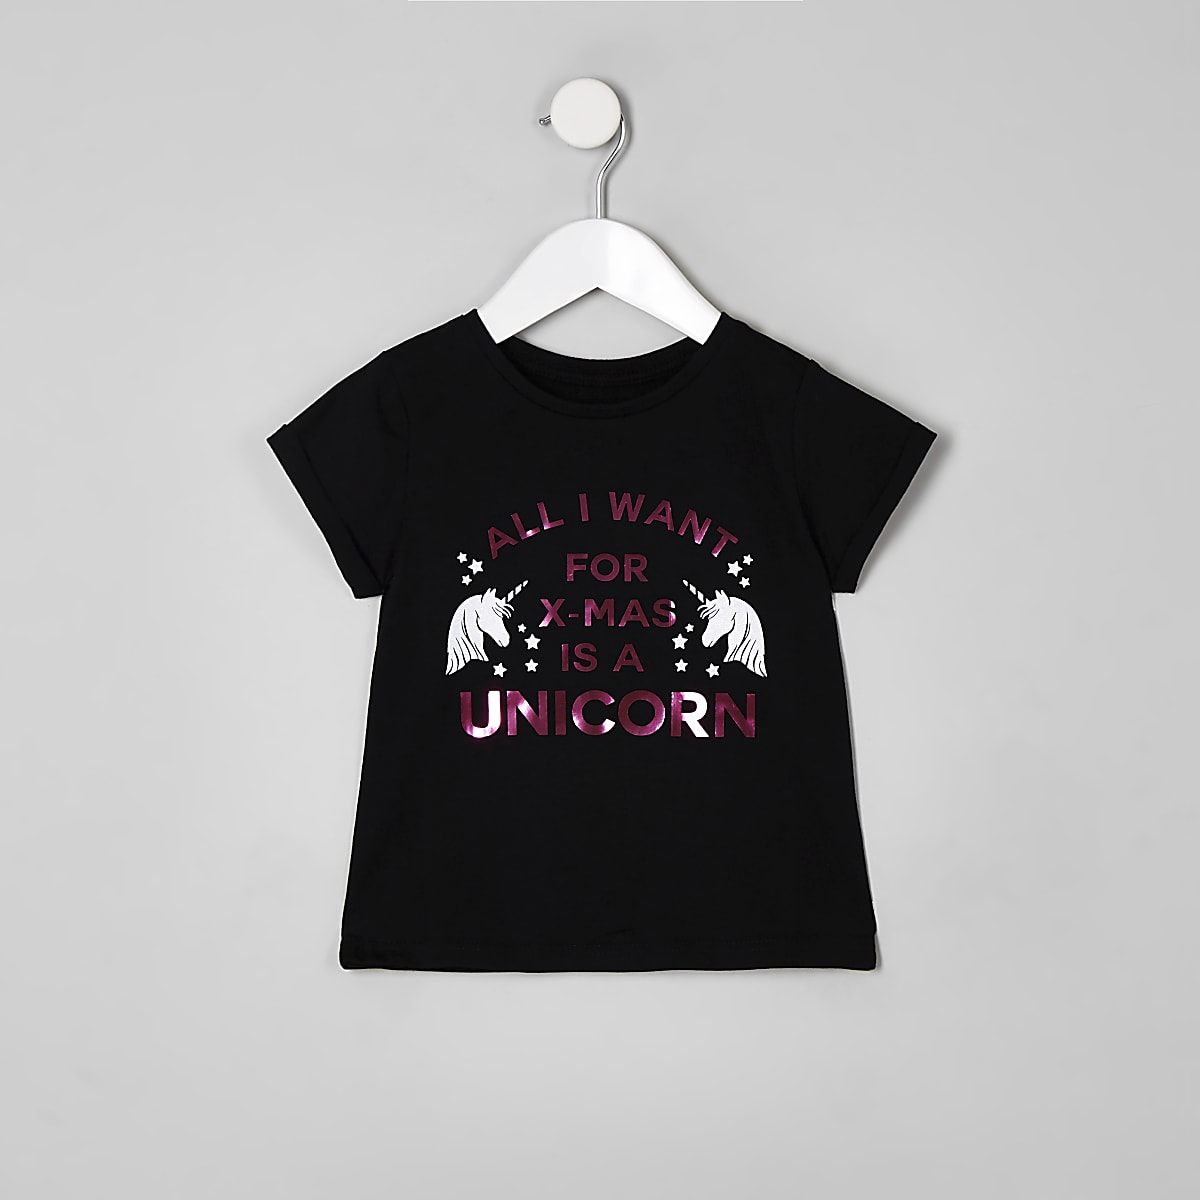 Mini girls black 'xmas' unicorn T-shirt